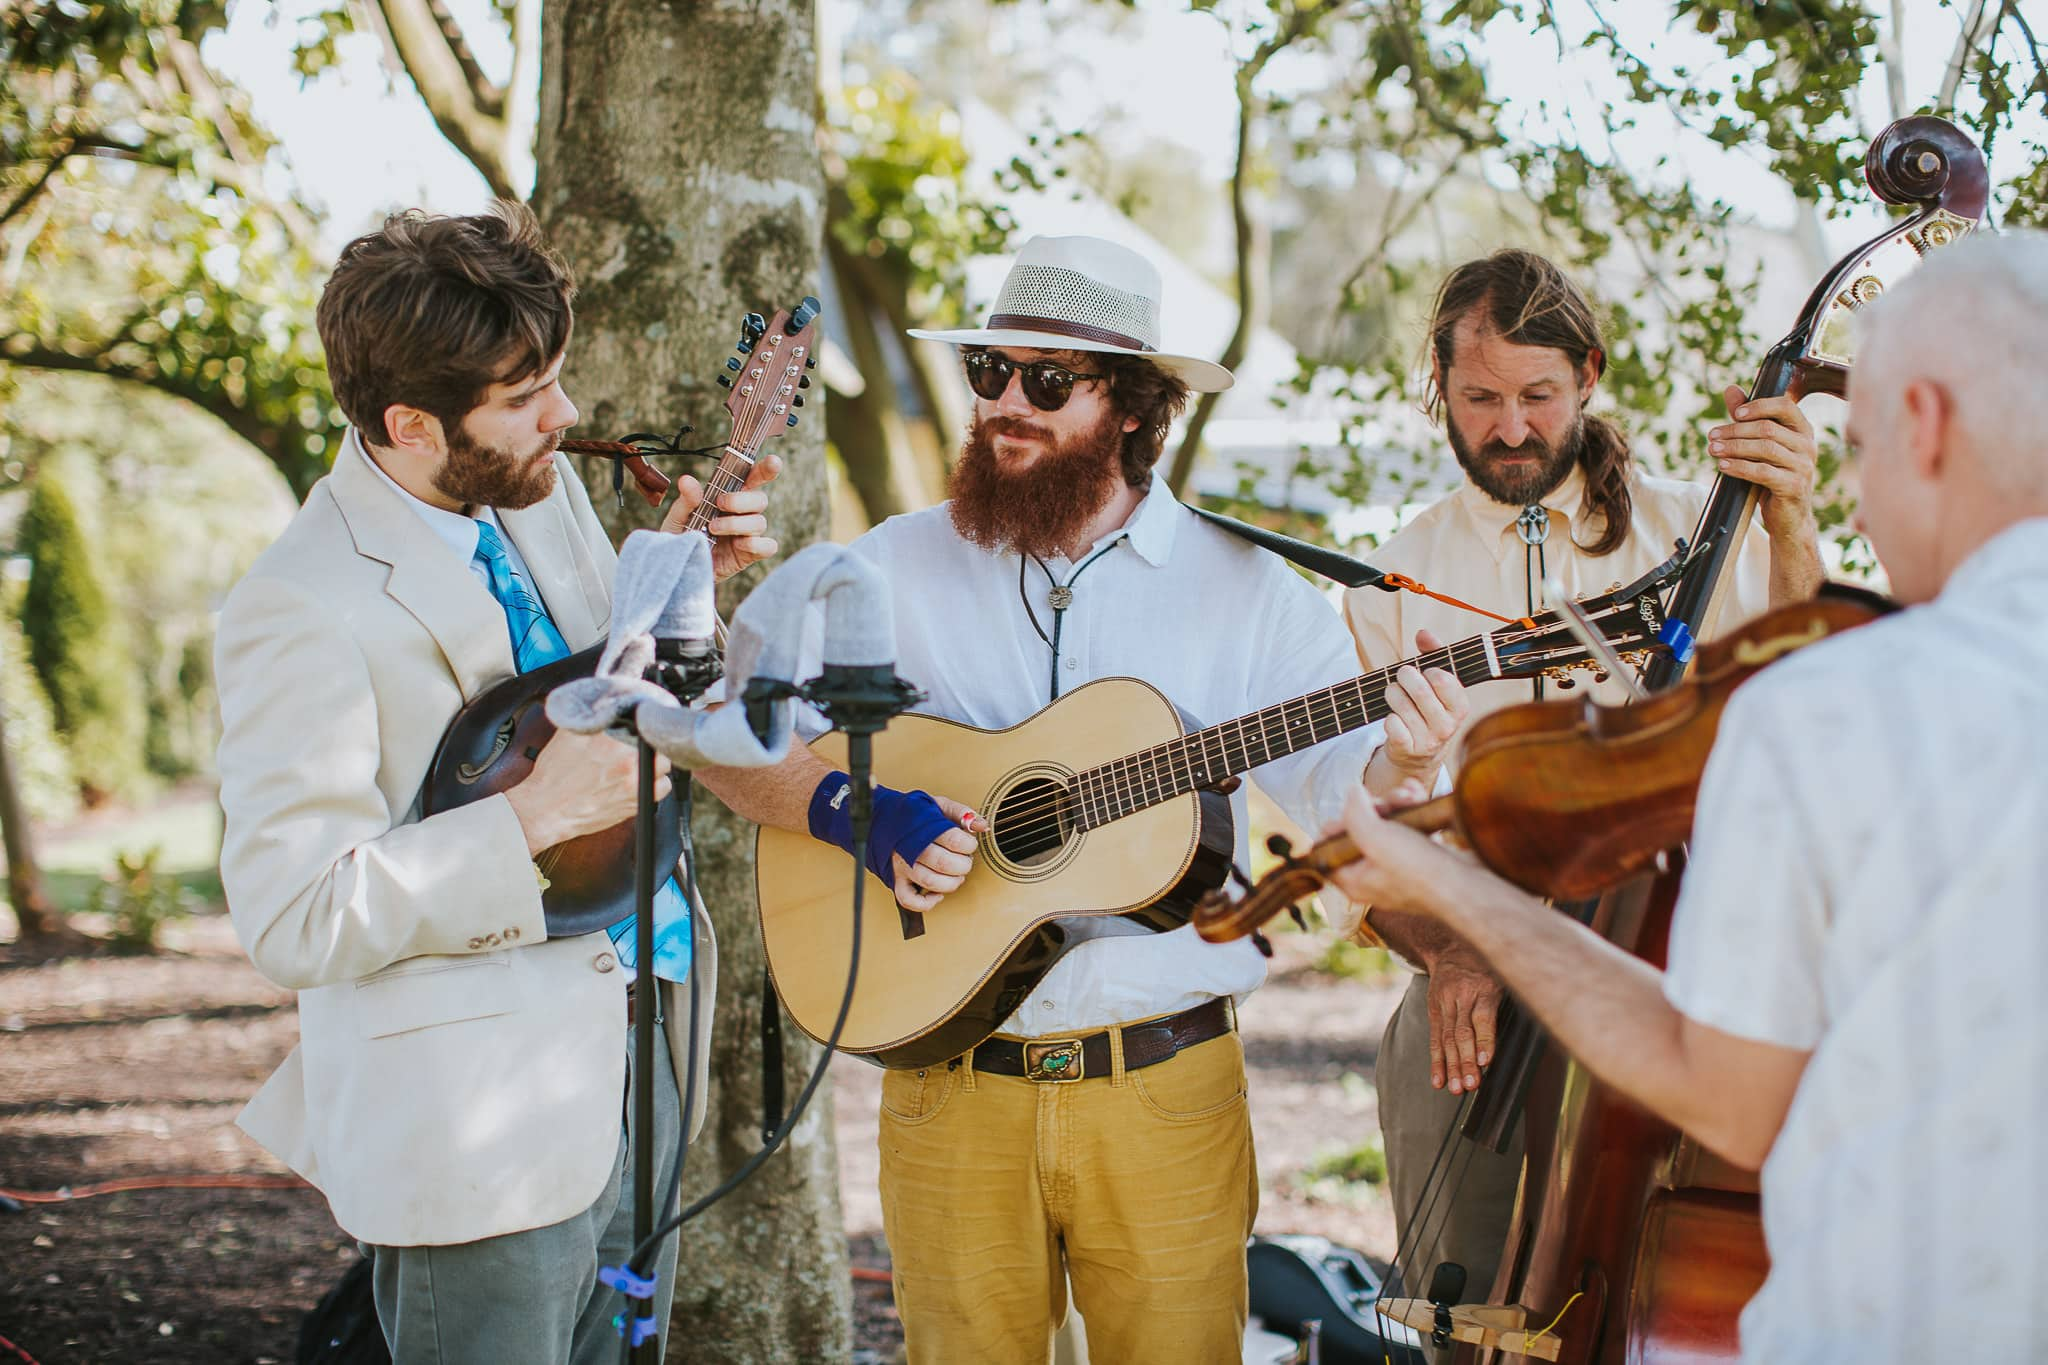 We hired a blue grass 4-piece string band who will play during the ceremony